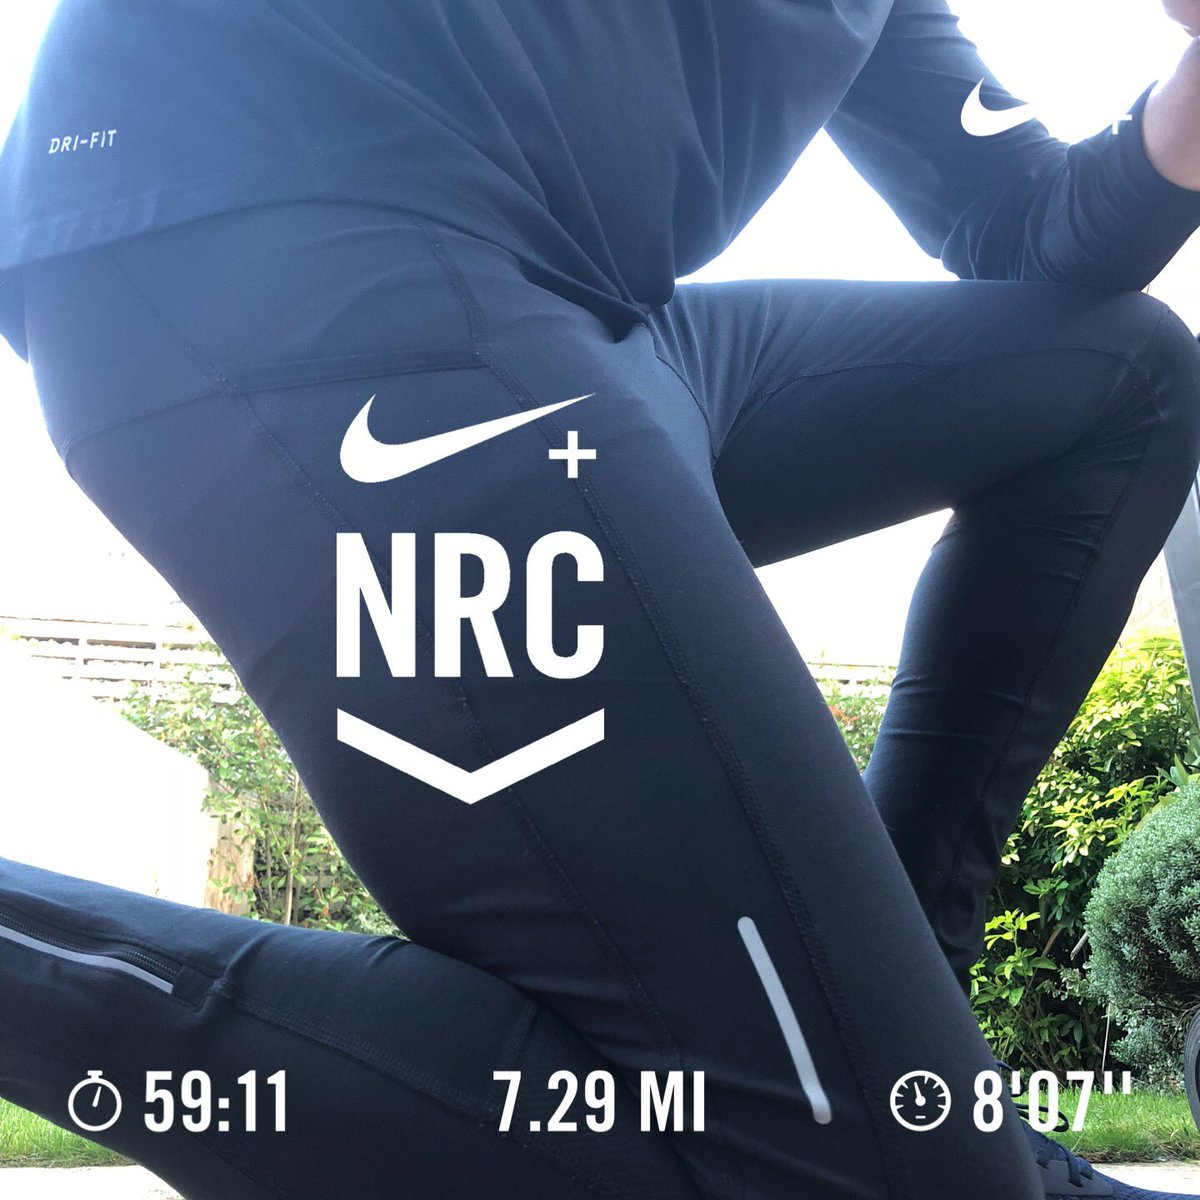 1c1659094b0c3 It was a running tights sort of a morning today, absolutely freezing ! #nrc  #nike #nikerunning #epicreact #nikerunclub #justdoit #runnersofinstagram ...